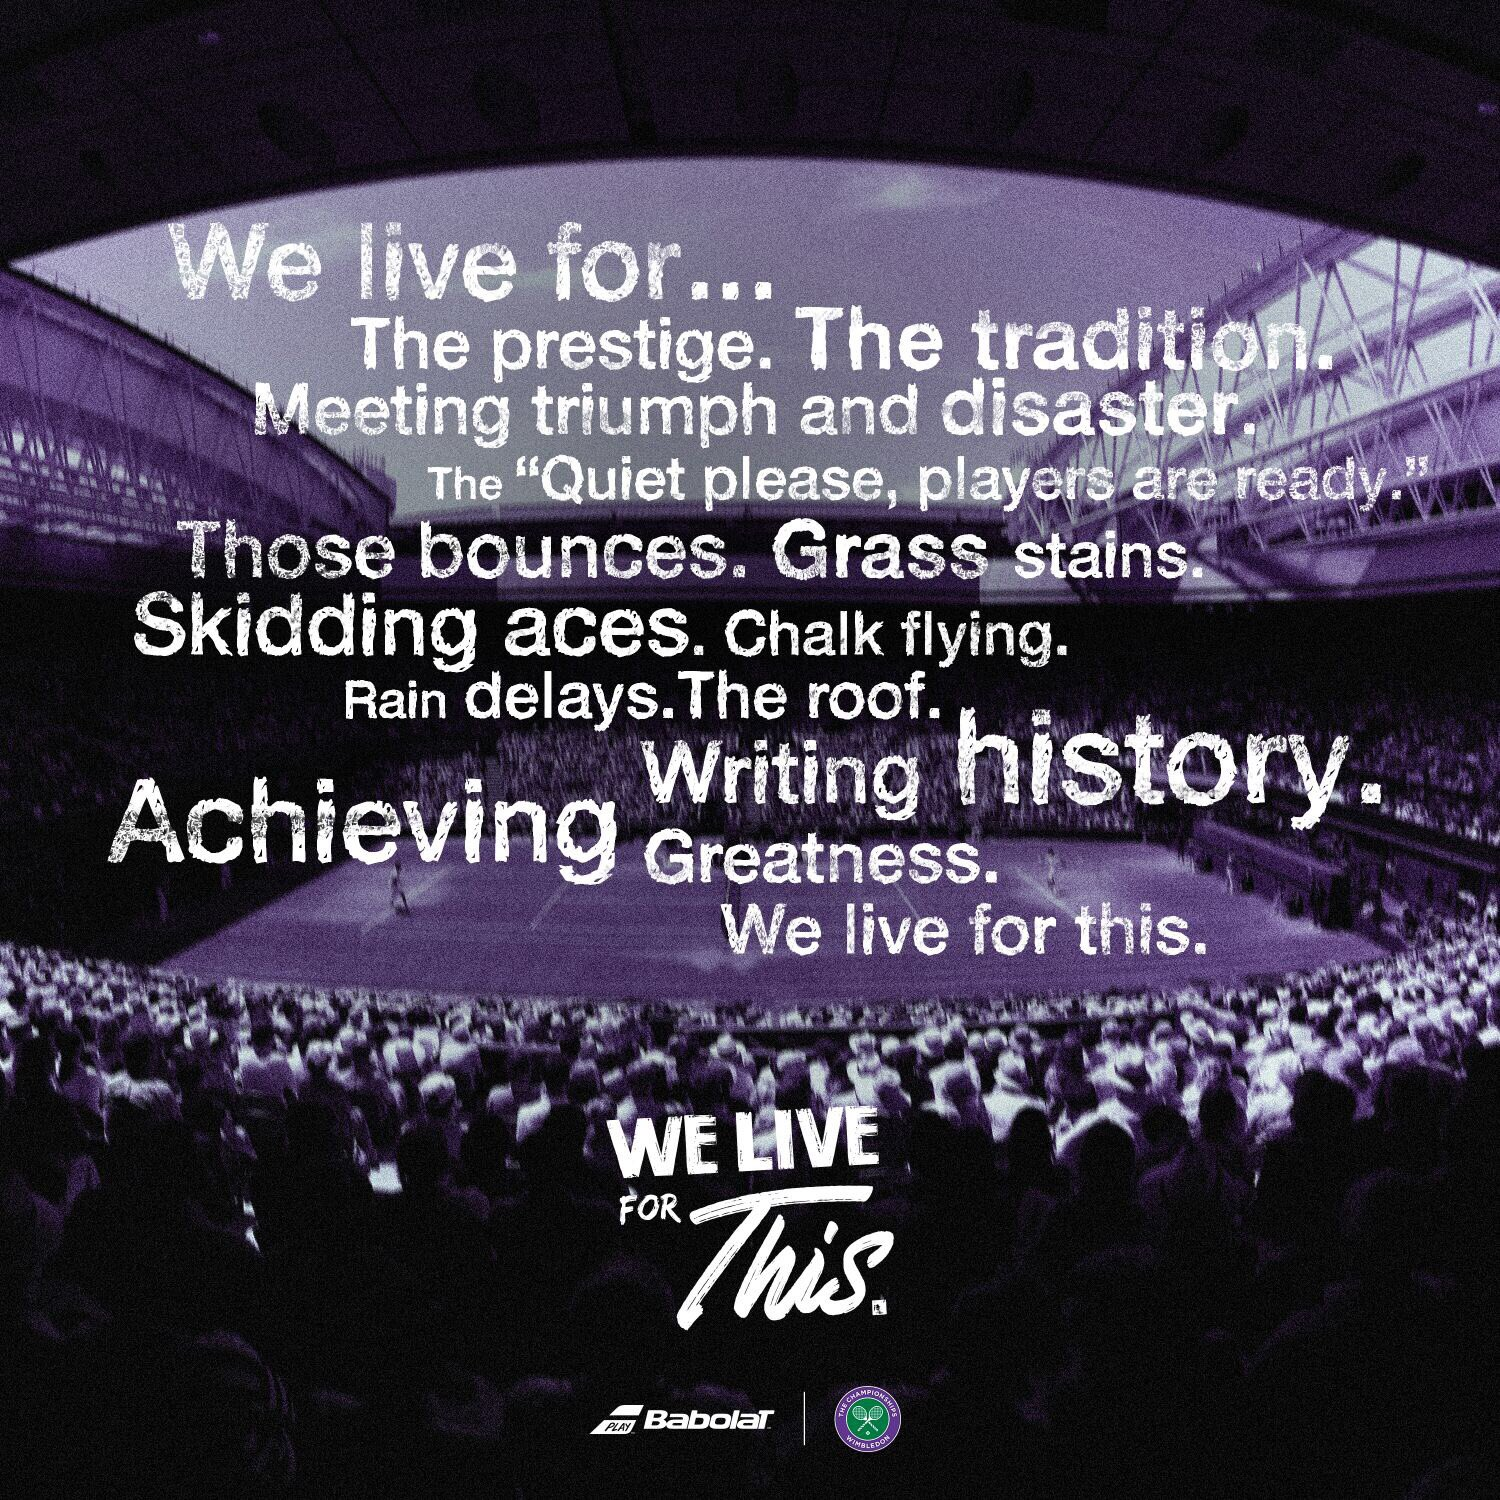 What we live for...@babolat @Wimbledon https://t.co/SGSk7M3z1Z